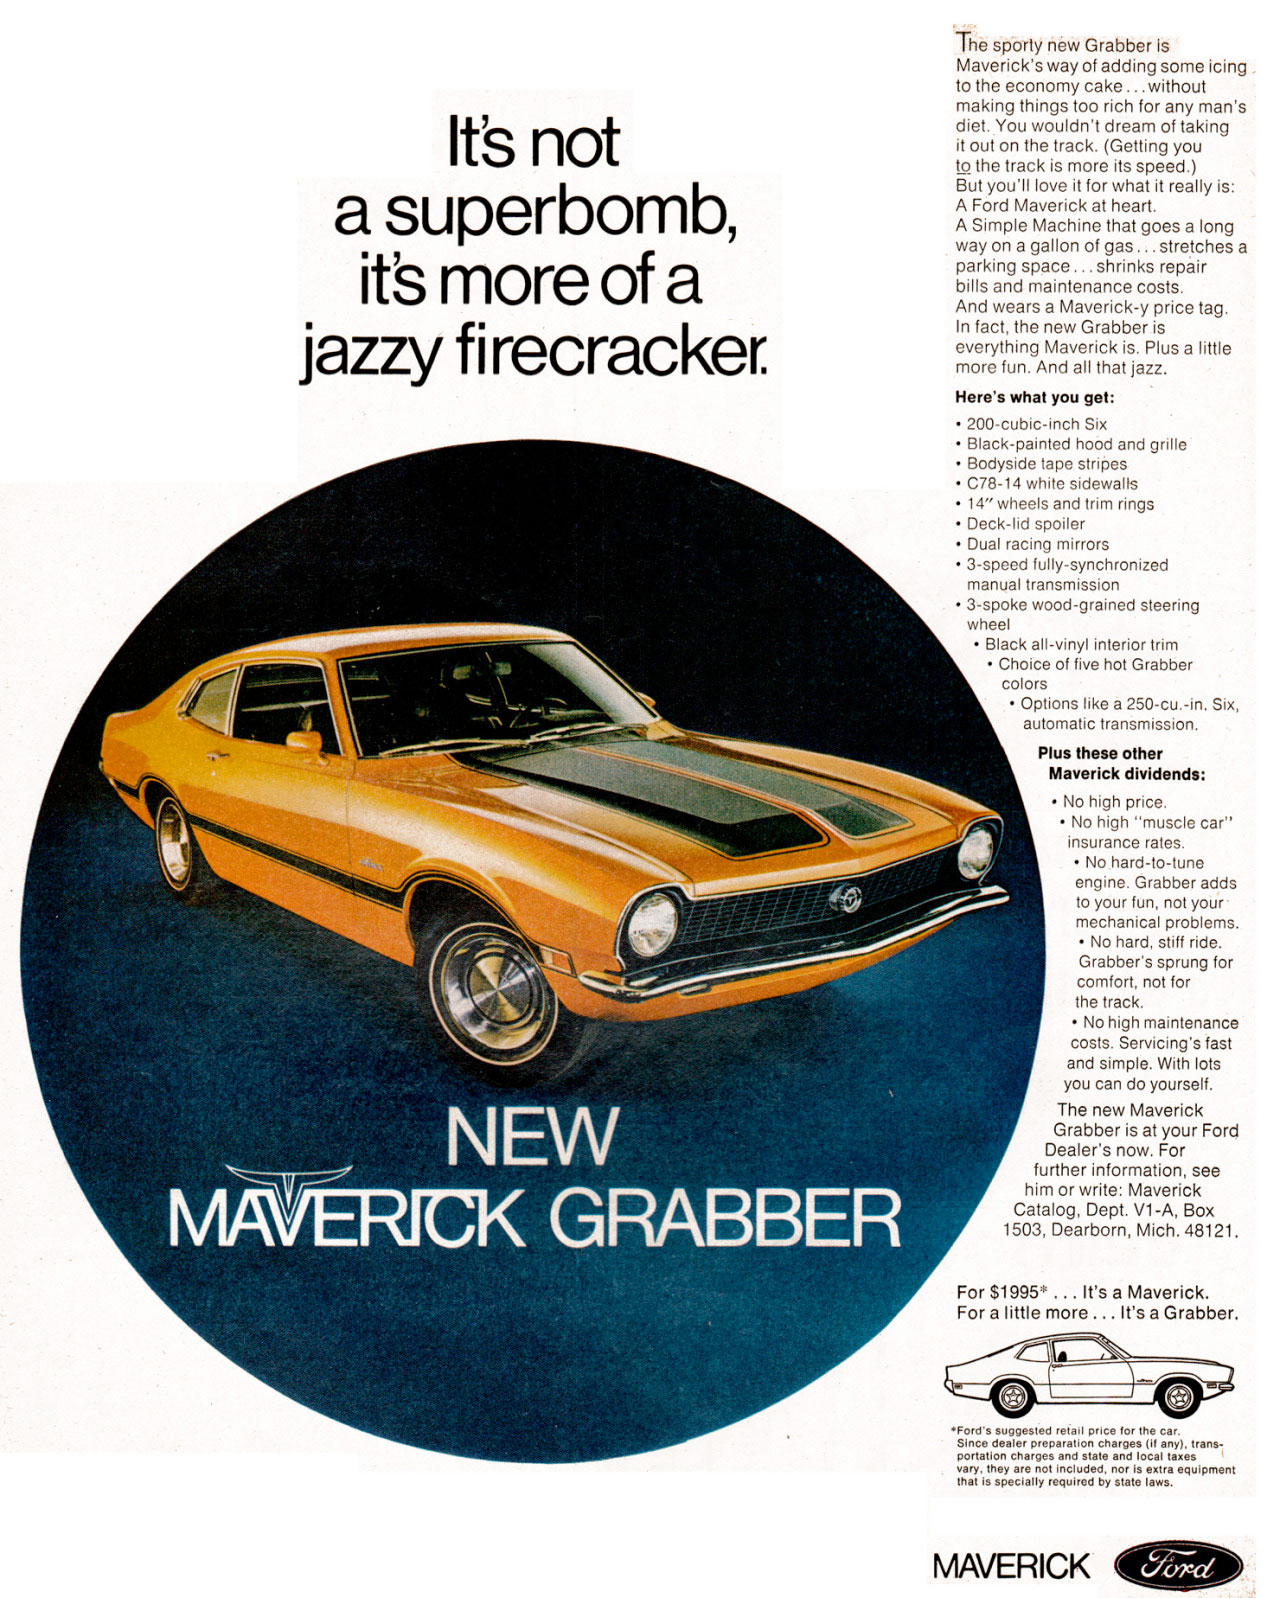 It's not a superbomb, it's more of a jazzy firecracker.   The sporty new Grabber is Maverick's way of adding some icing to the economy cake...without making things too rich for any man's diet. You wouldn't dream of taking it out on the track. (Getting you to the track is more its speed.) But you'll love it for what it really is: A Ford Maverick at heart. A Simple Machine that goes a long way on a gallon of gas... stretches a parking space ... shrinks repair bills and maintenance costs. And wears a Maverick-y price tag. In fact, the new Grabber is everything Maverick is. Plus a little more fun. And all that jazz. Here's what you get: • 200-cubic-inch Six • Black-painted hood and grille • Bodyside tape stripes • C78-14 white sidewalls • 14'' wheels and trim rings • Deck-lid spoiler • Dual racing mirrors • 3-speed fully-synchronized manual transmission • 3-spoke wood-grained steering wheel • Black all-vinyl interior trim • Choice of five hot Grabber colors • Options like a 250-cu.-in. Six, automatic transmission.  Plus these other Maverick dividends: • No high price. • No high ''muscle car'' insurance rates. • No hard-to-tune engine. Grabber adds to your fun, not your mechanical problems. • No hard, stiff ride. Grabber's sprung for comfort, not for the track. • No high maintenance costs. Servicing's fast and simple. With lots you can do yourself. The new Maverick Grabber is at your Ford Dealer's now. For further information, see him or write: Maverick Catalog, Dept. V1-A, Box 1503, Dearborn, Mich. 48121.  For $1995. ... It's a Maverick. For a little more ... It's a Grabber.  laU1111-111! Cr  Since retail price for the car. •Forers slenZaarit°57ef:Eie:F:. :Qui mint trgol by state giraY,::;eclanY requlrod  MAVERICK